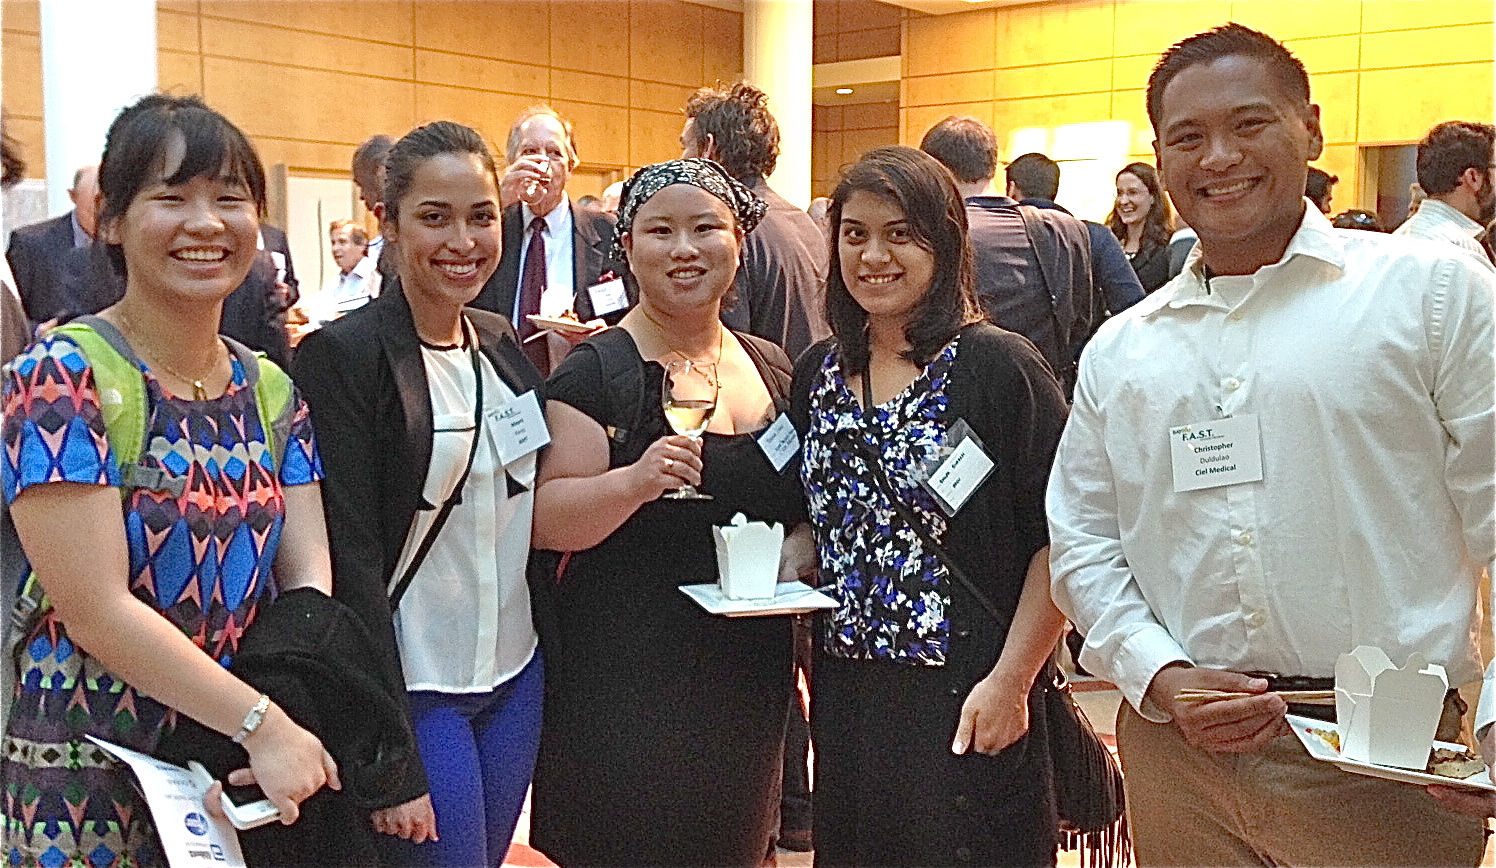 PSM students at the BaybioFAST program final showcase in spring 2014